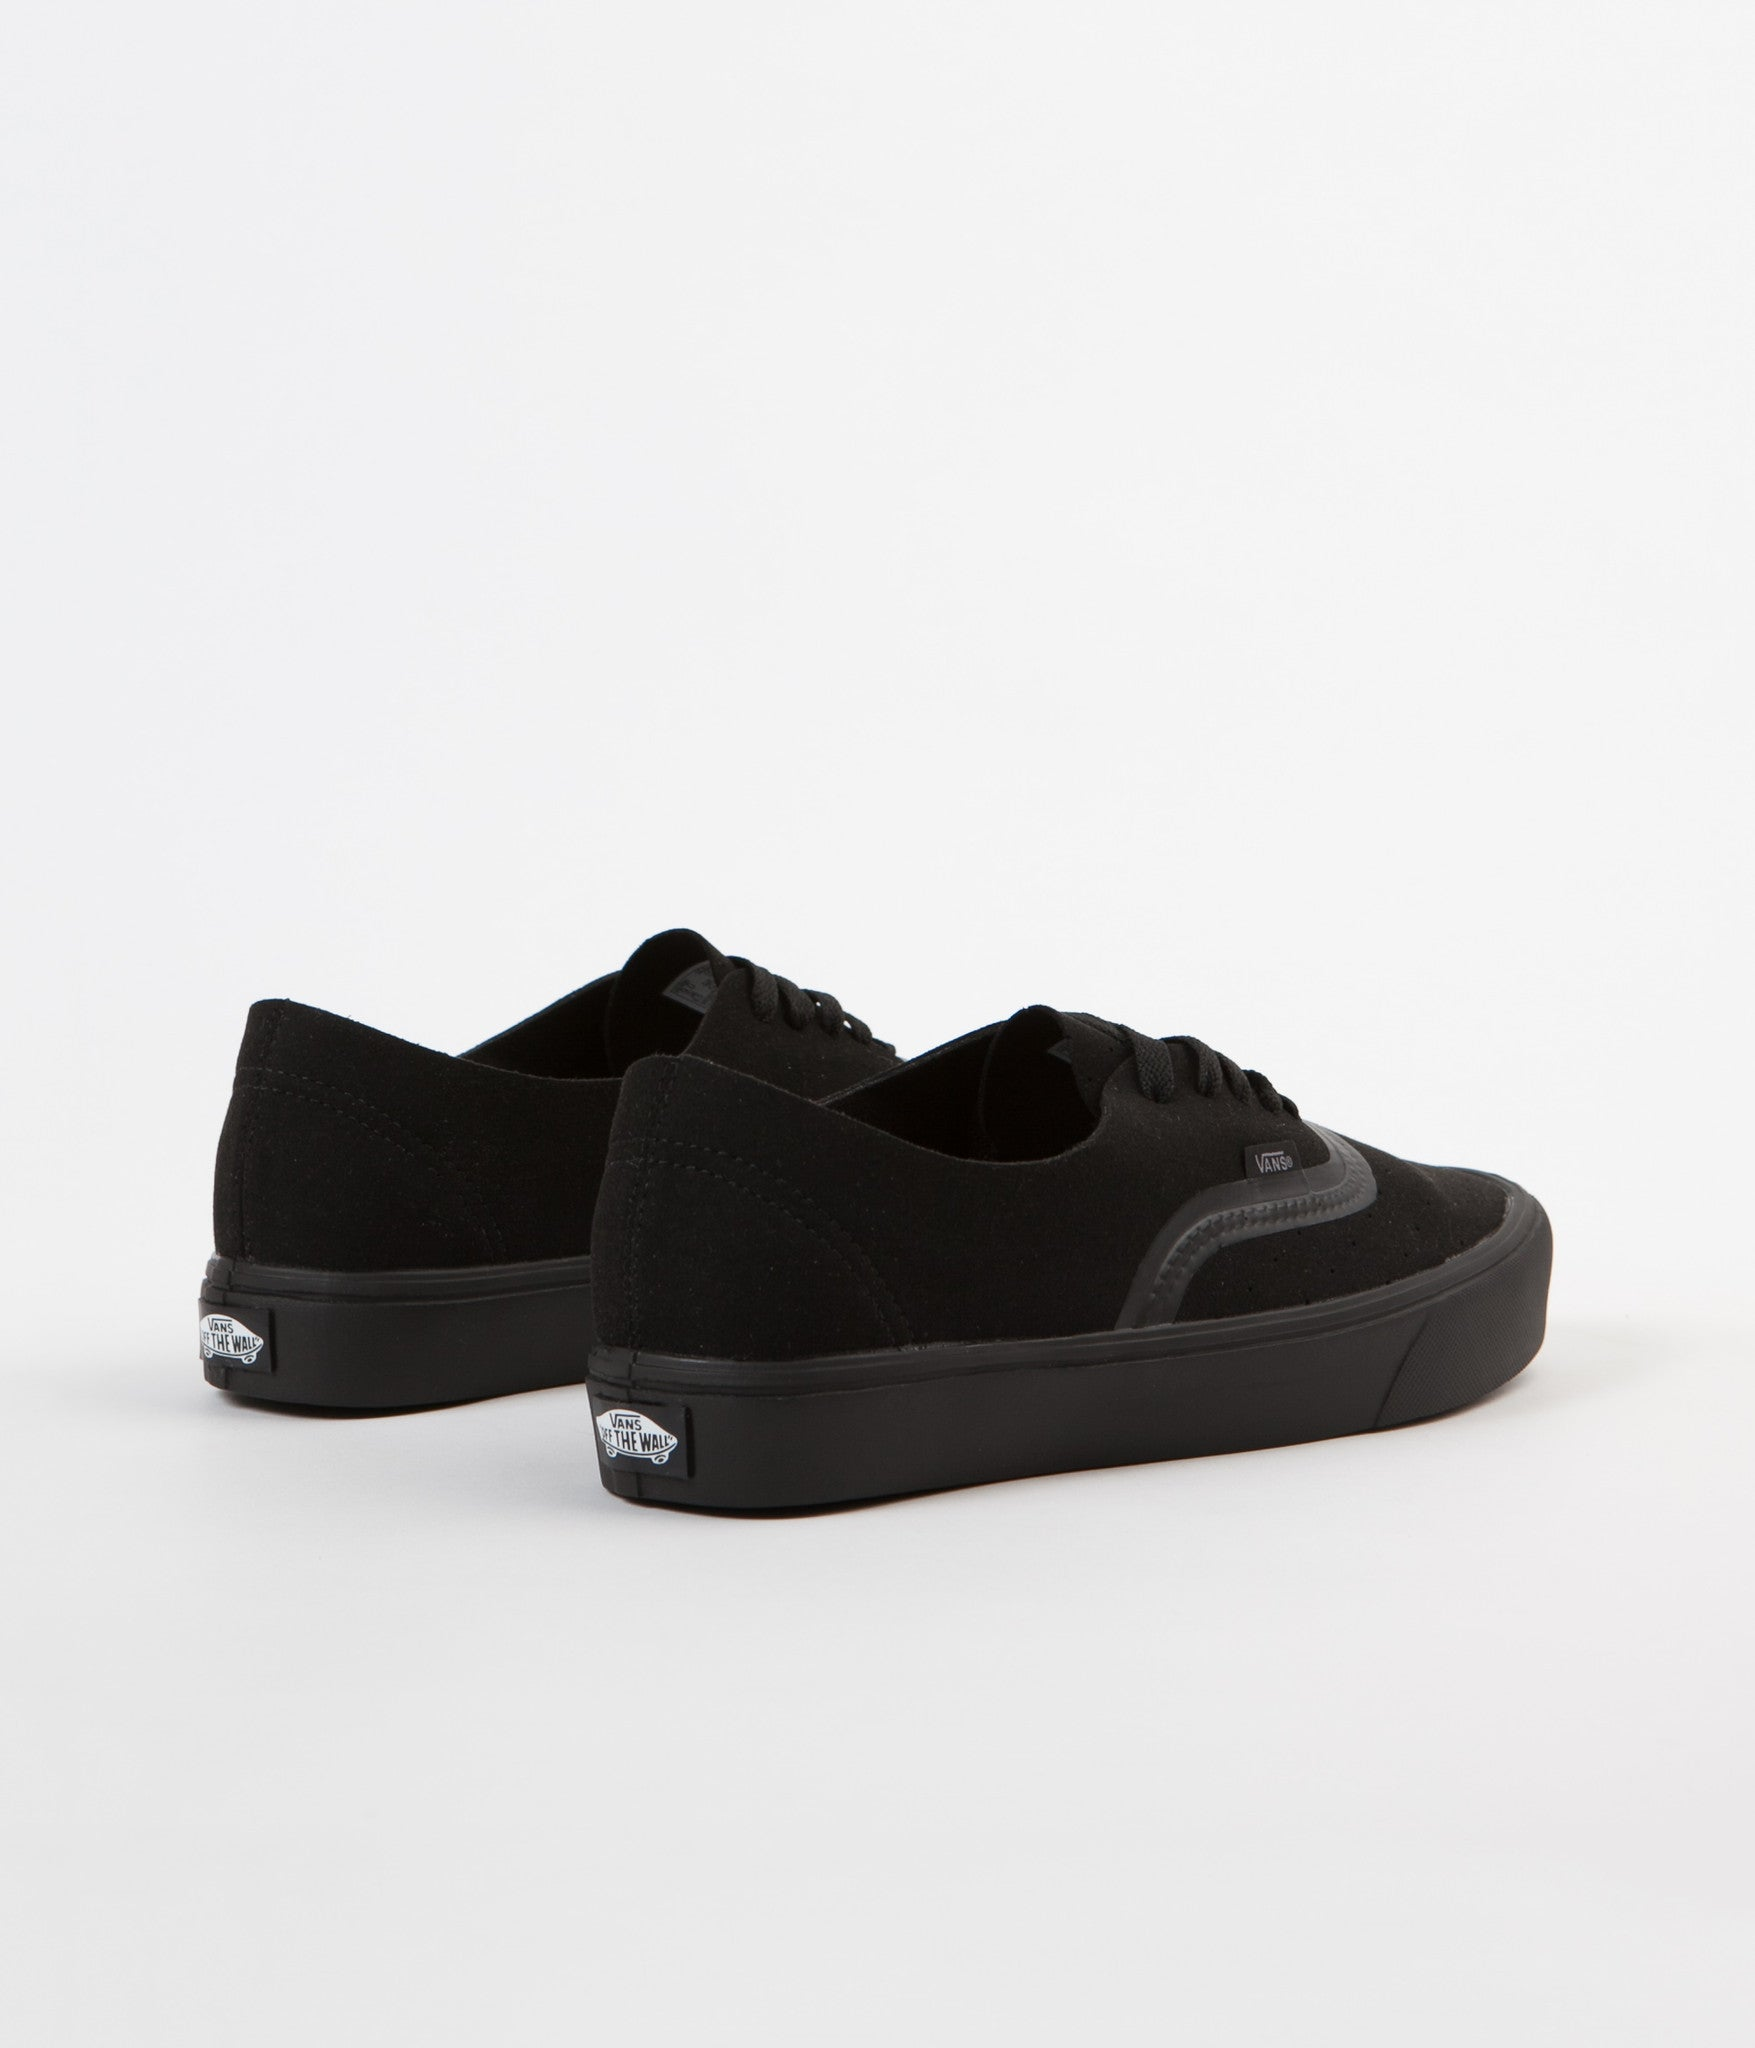 Vans Authentic Lite Rapidweld (Perf) Shoes - Black / Black